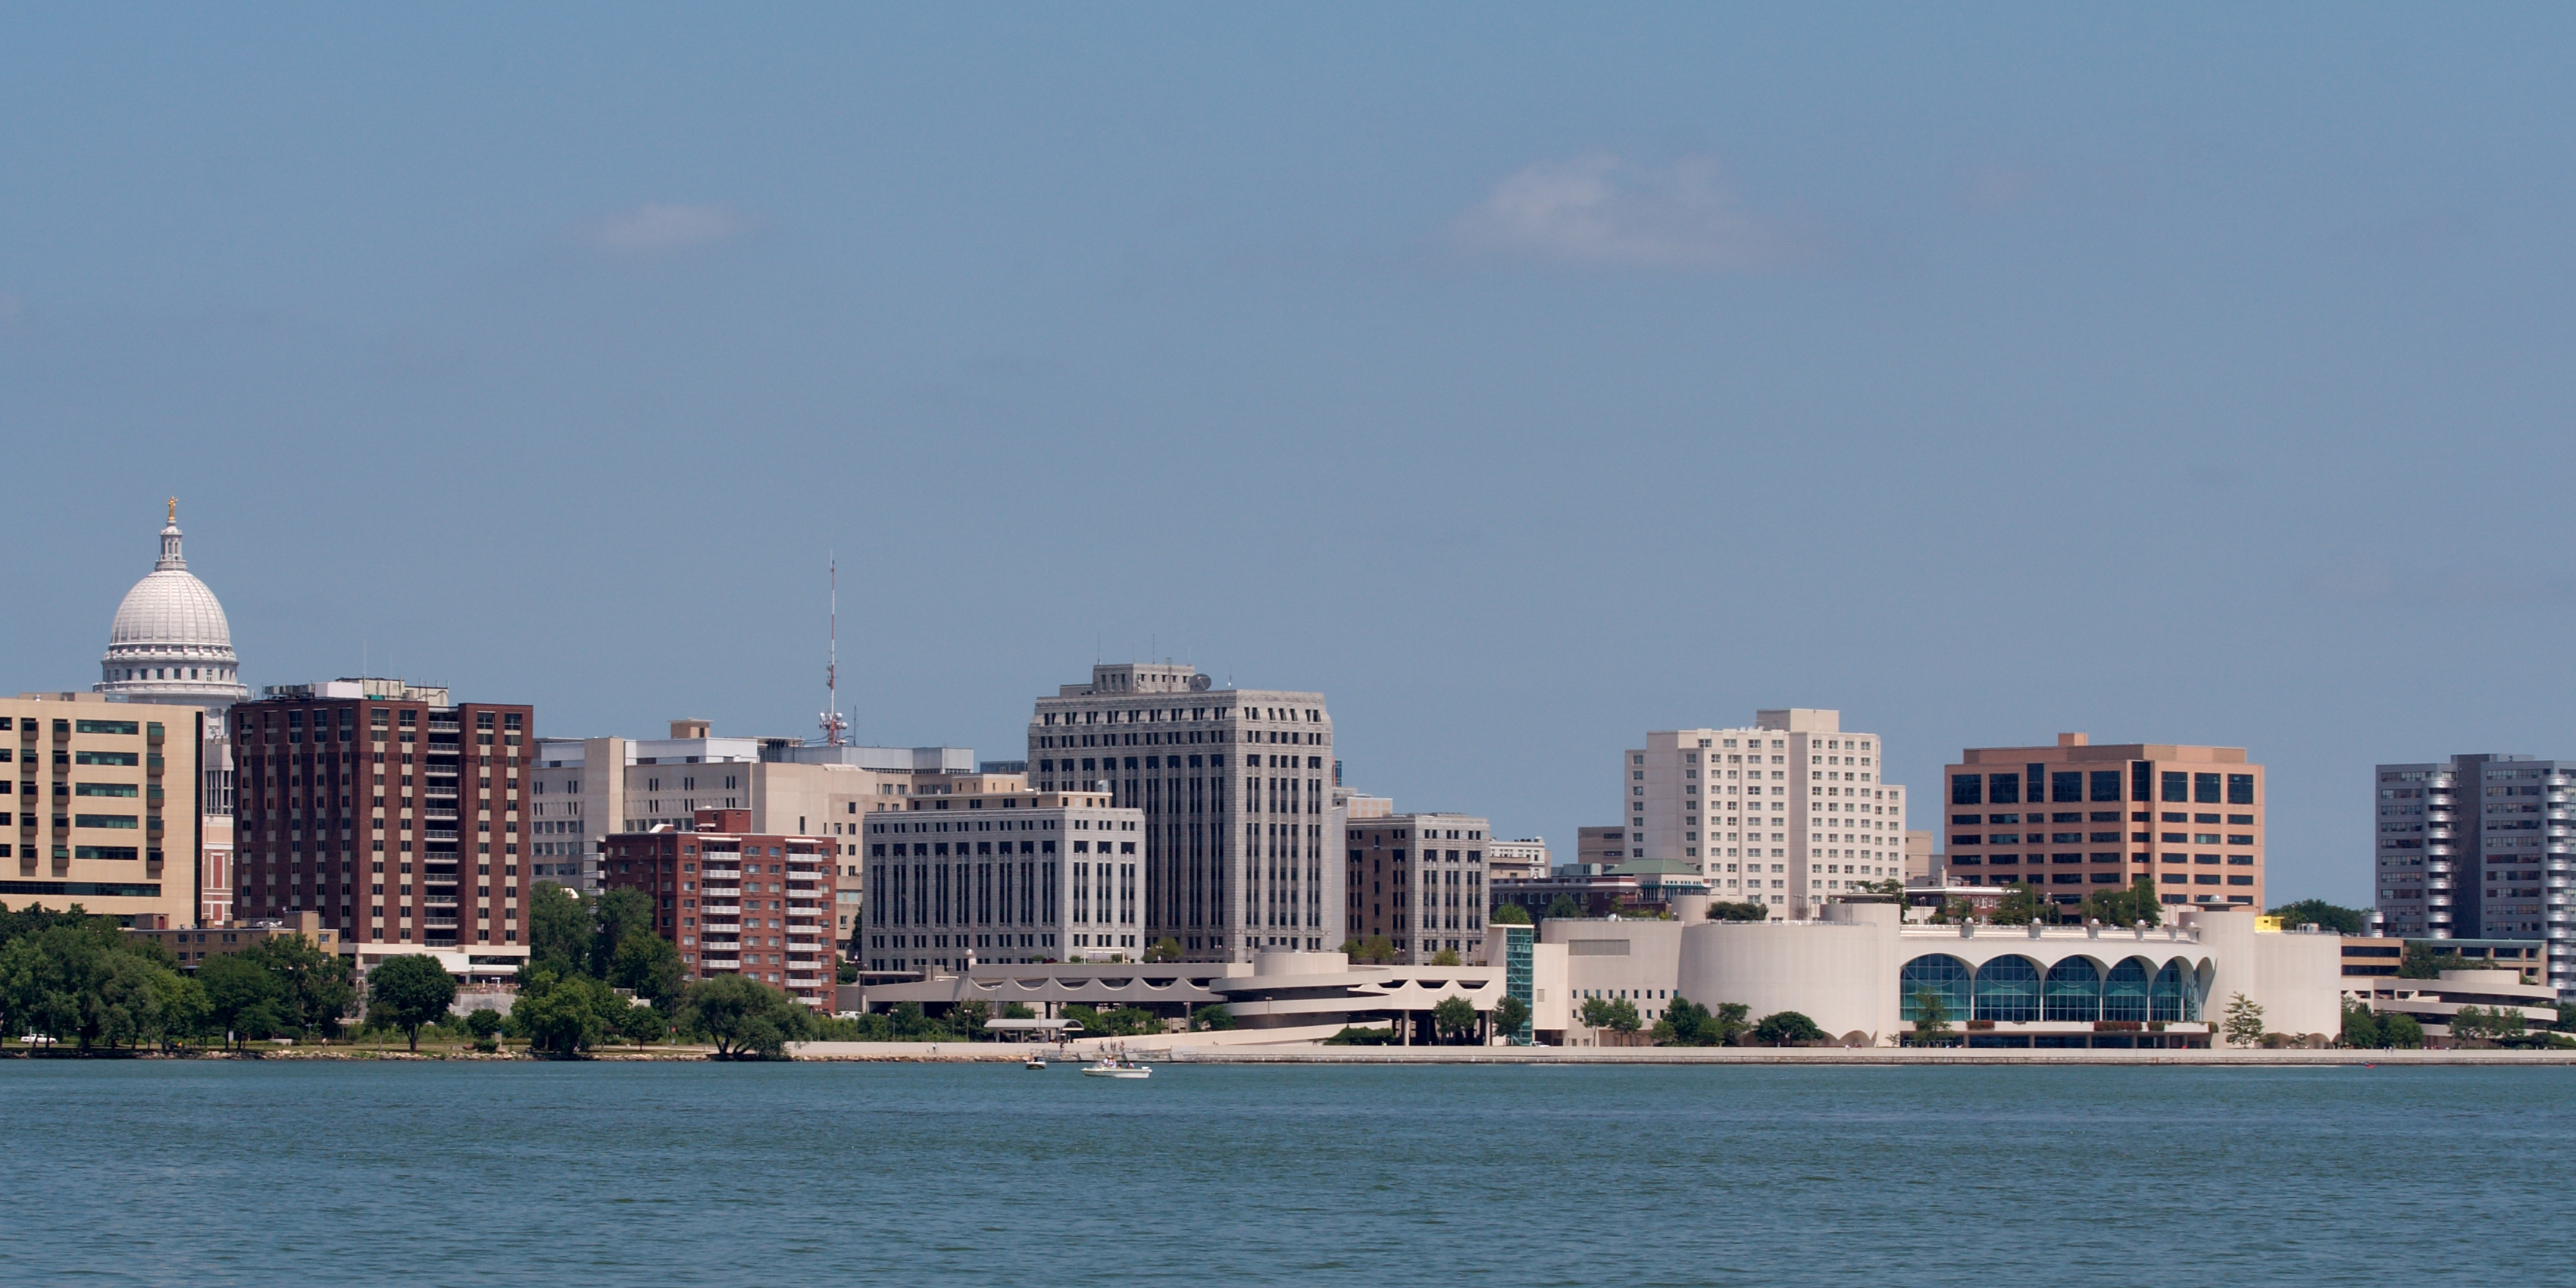 Image of Madison Capitol and Monona Terrace